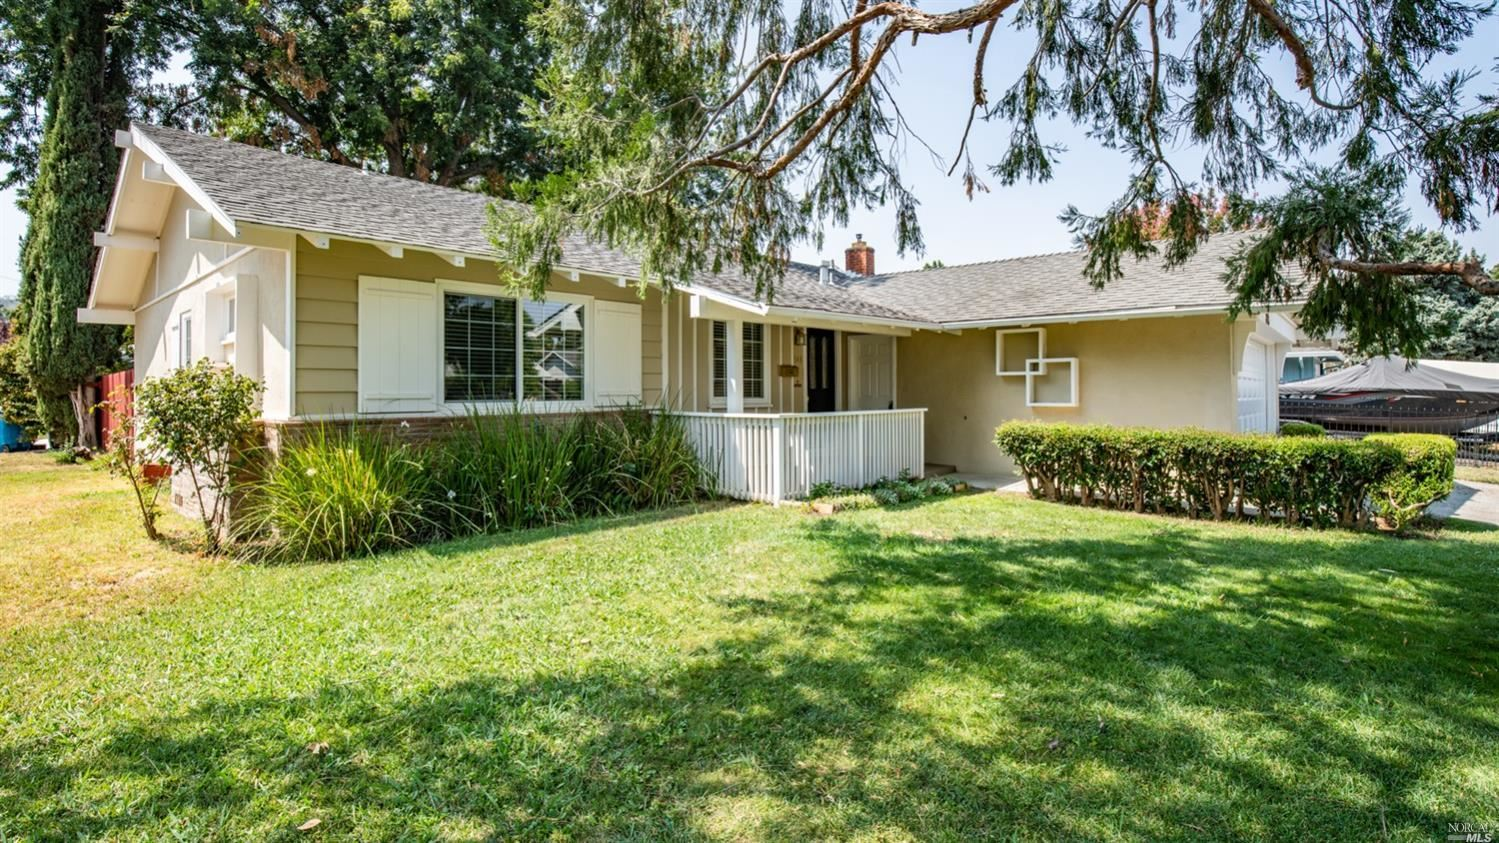 348 Orchard Avenue, Vacaville, CA 95688 - MLS#: 321086324